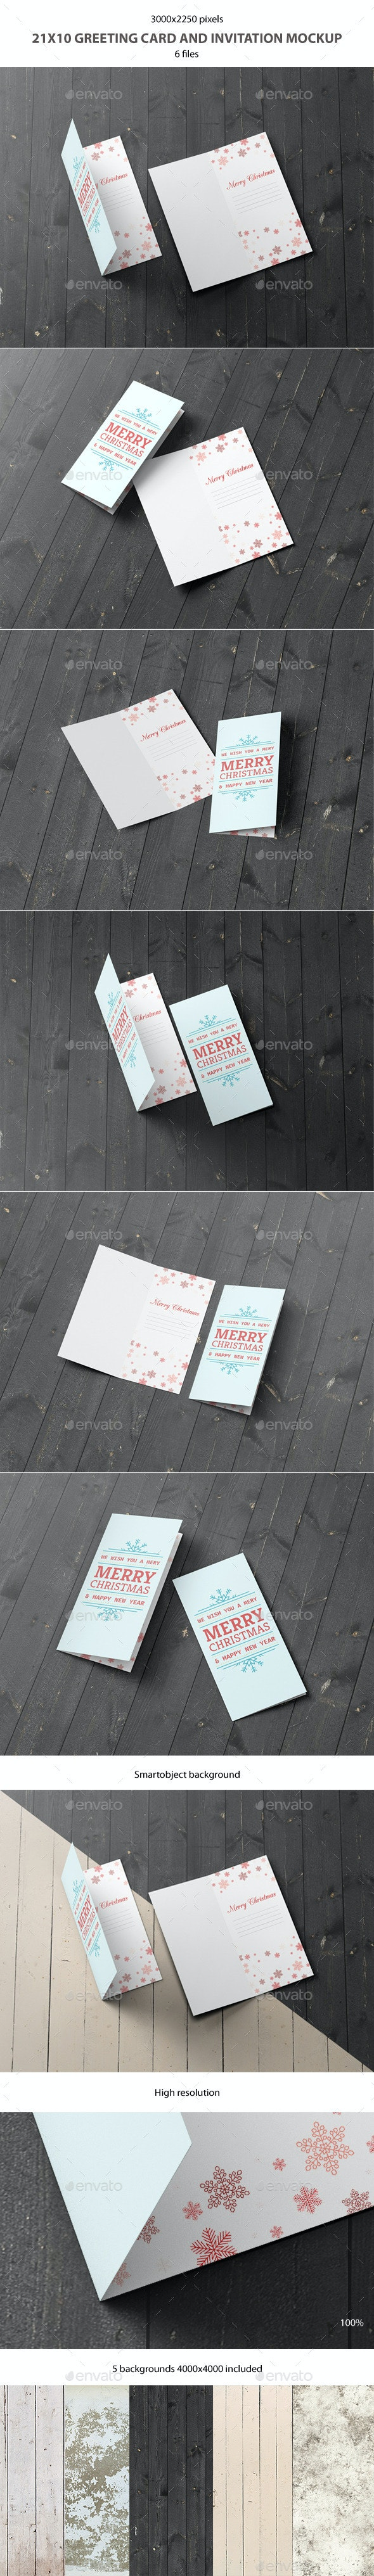 21x10 Greeting Card and Invitation Mockup - Miscellaneous Print